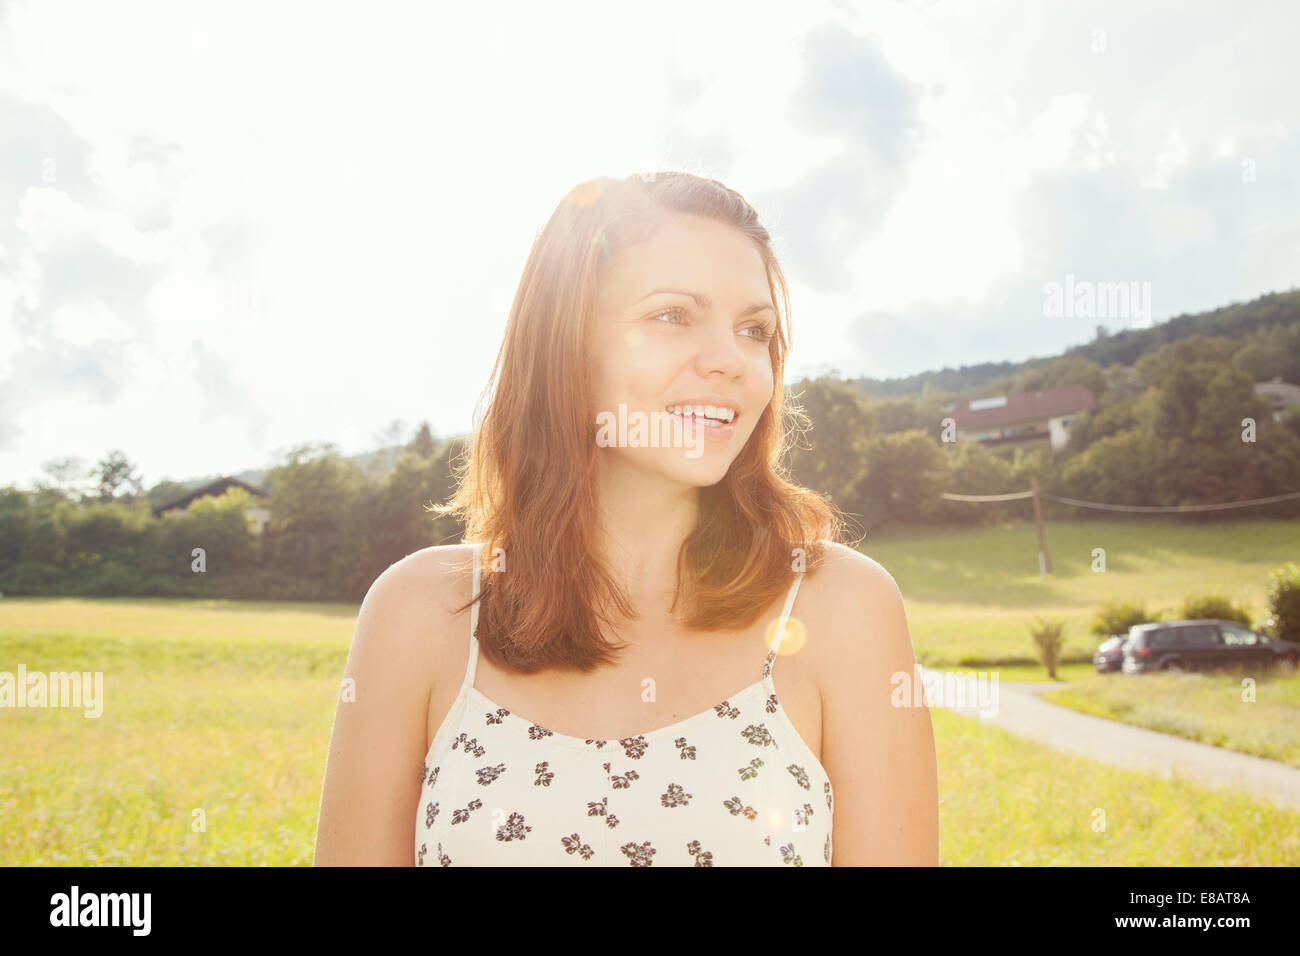 Young woman with brown hair, looking away - Stock Image